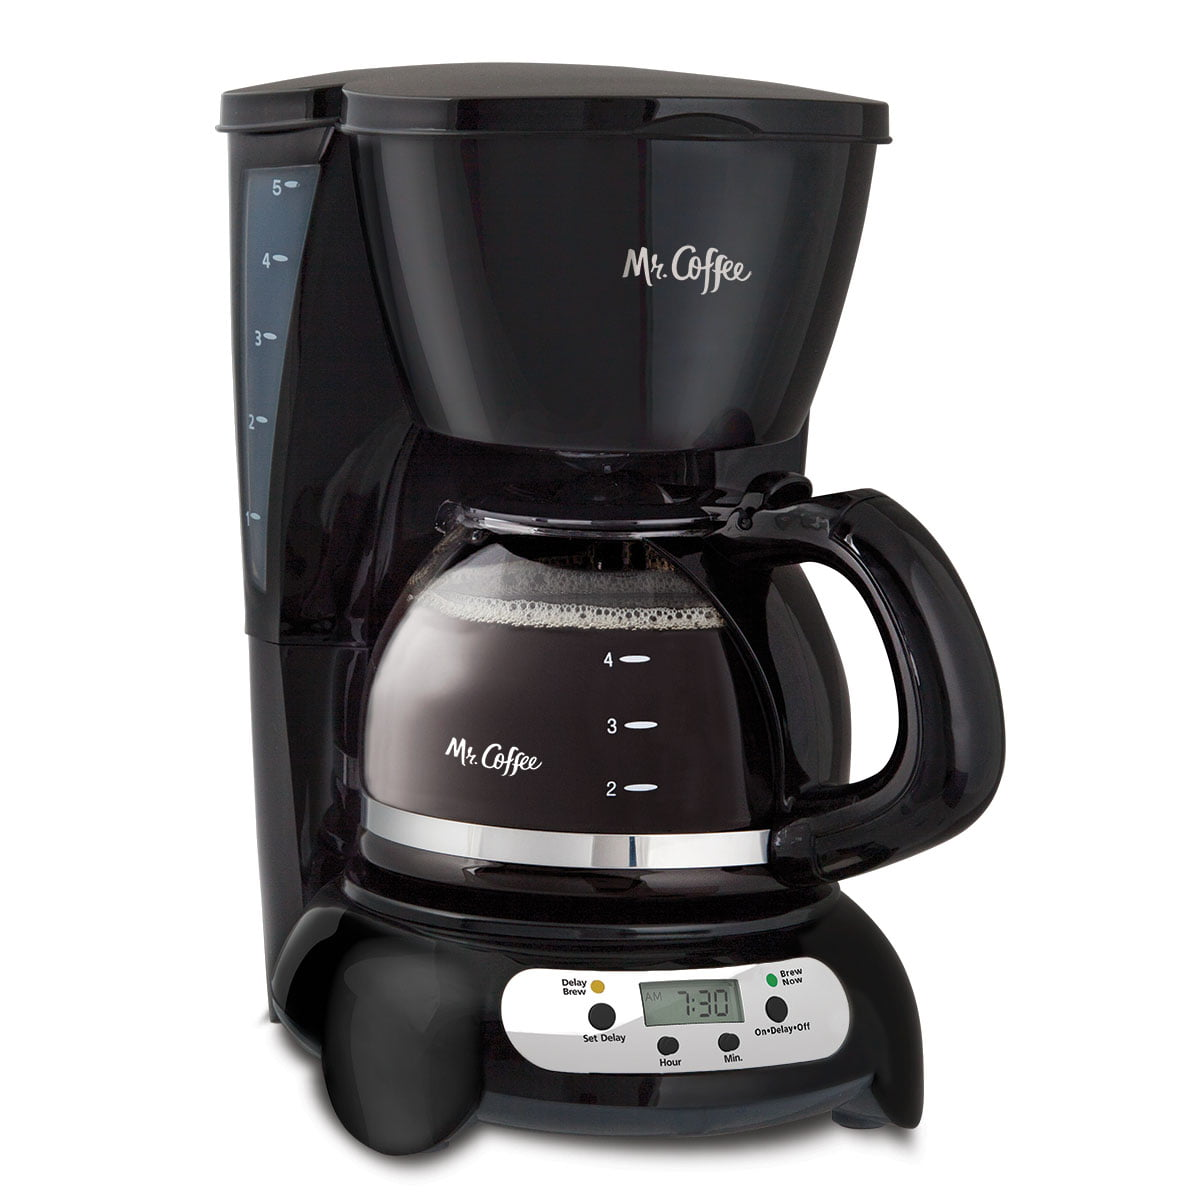 Mr. Coffee 5 Cup Programmable Black & Stainless Steel Drip Coffee Maker